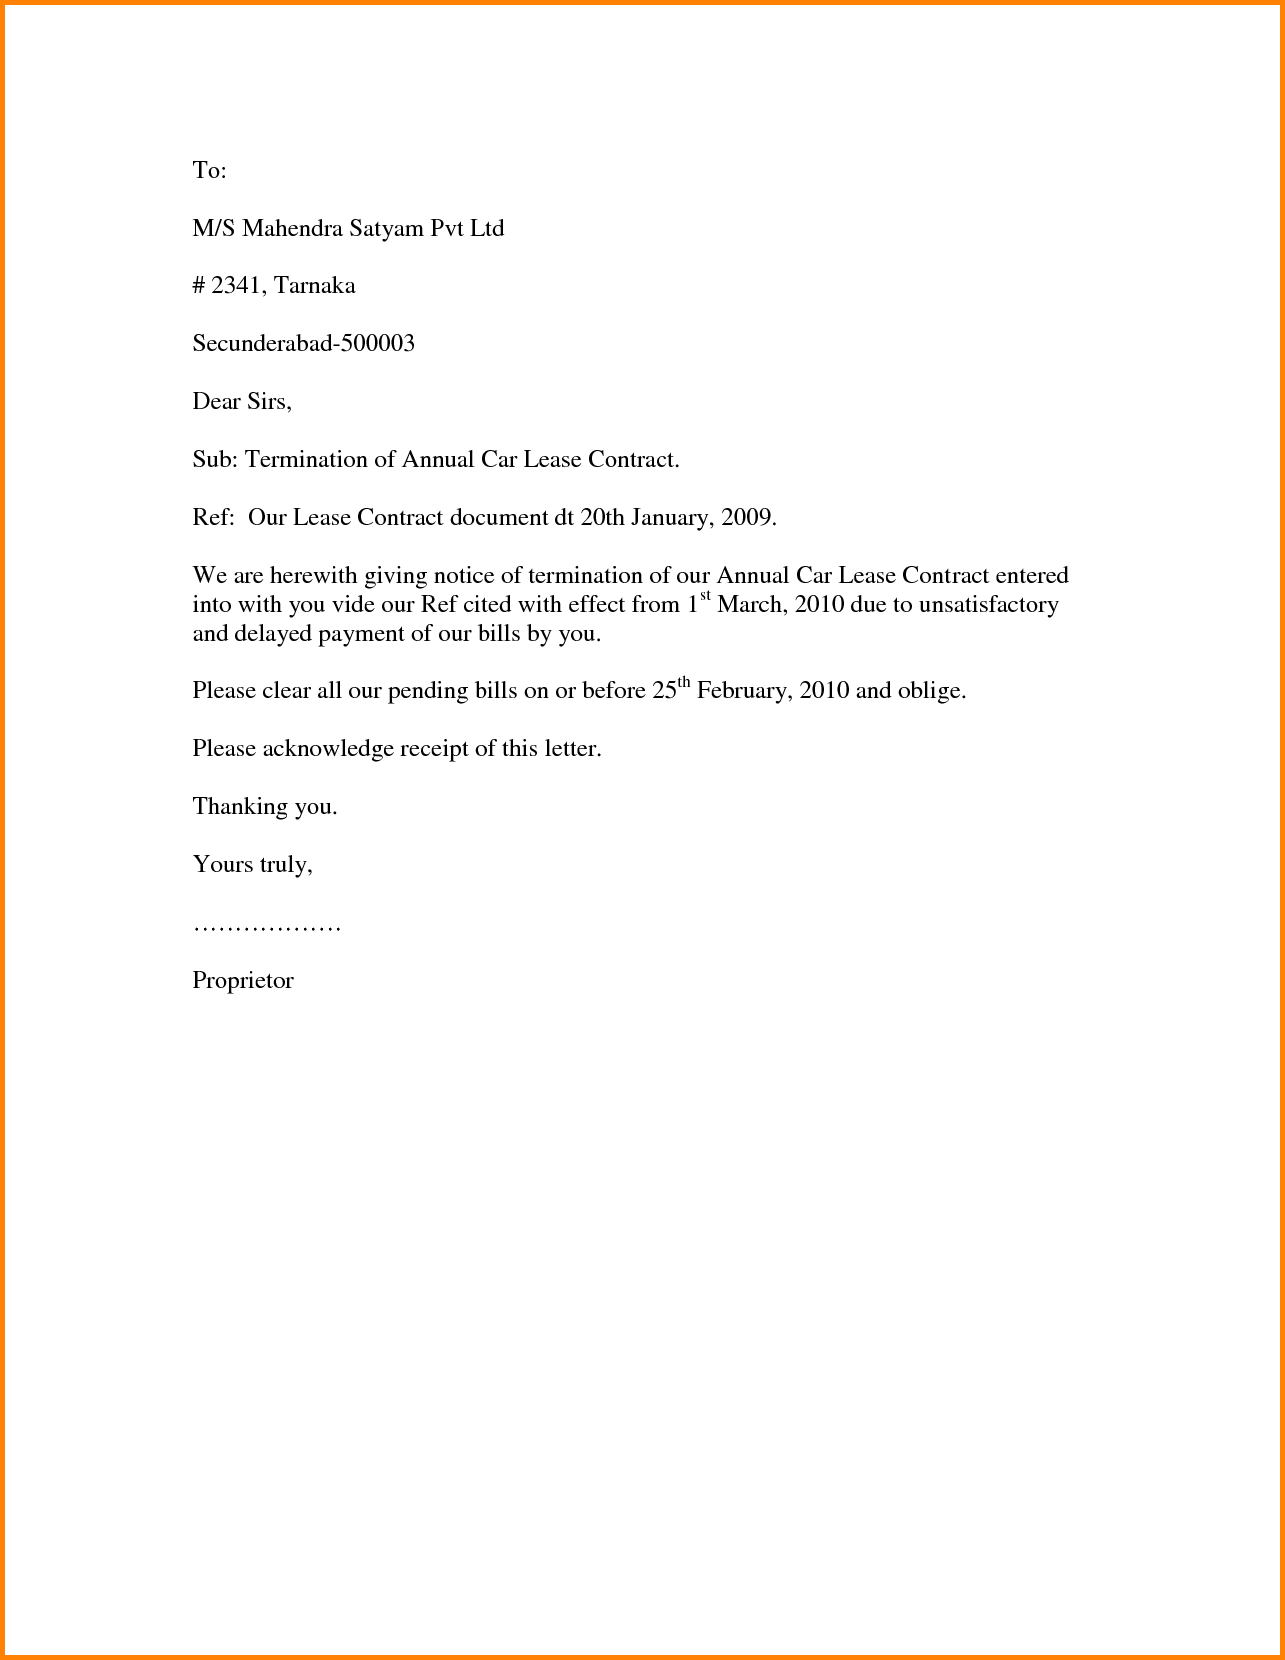 tenancy notice letter template Collection-Letter Template To End A Contract Copy Contract Letter Work Sample 13-h